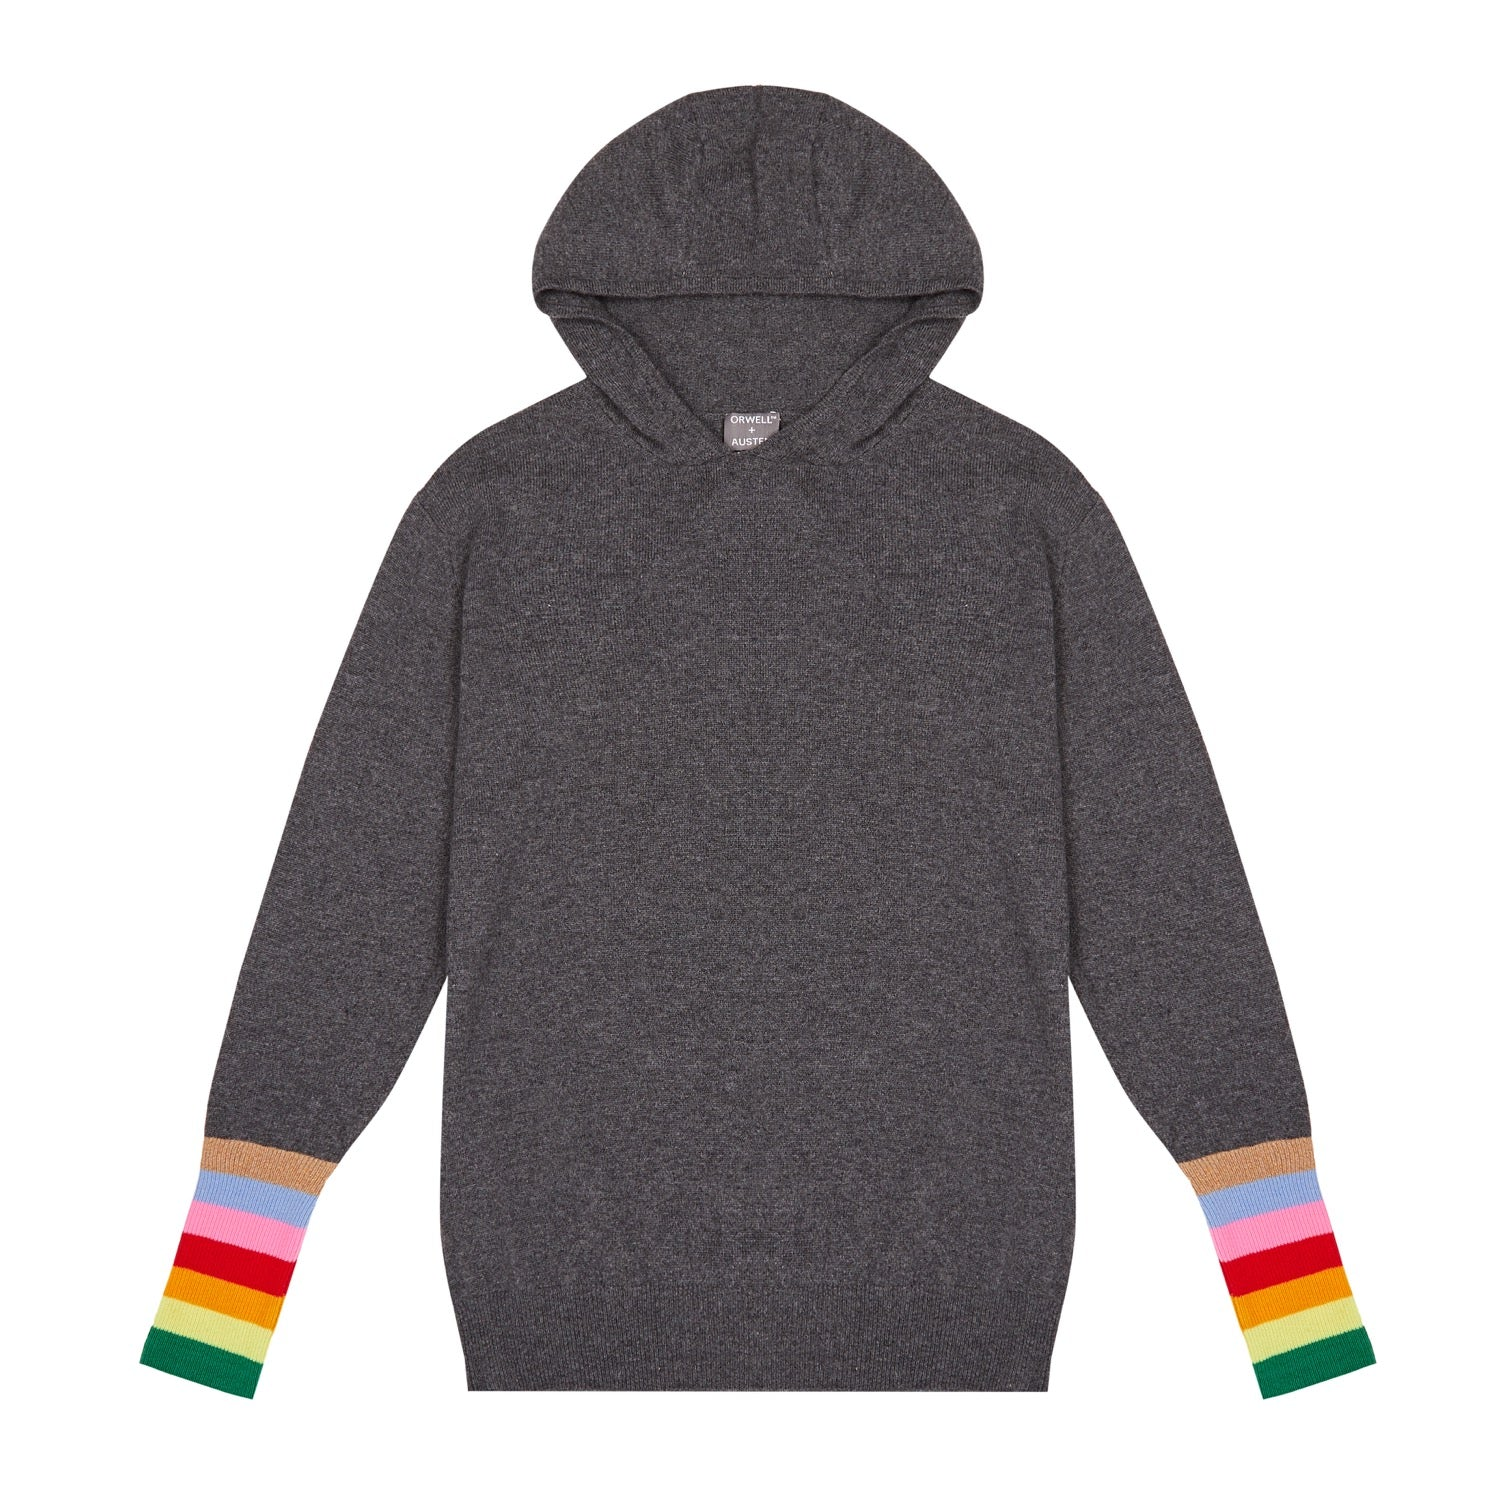 dark grey cashmere and wool blend women's loungewear hoodie with rainbow stripe cuff detail